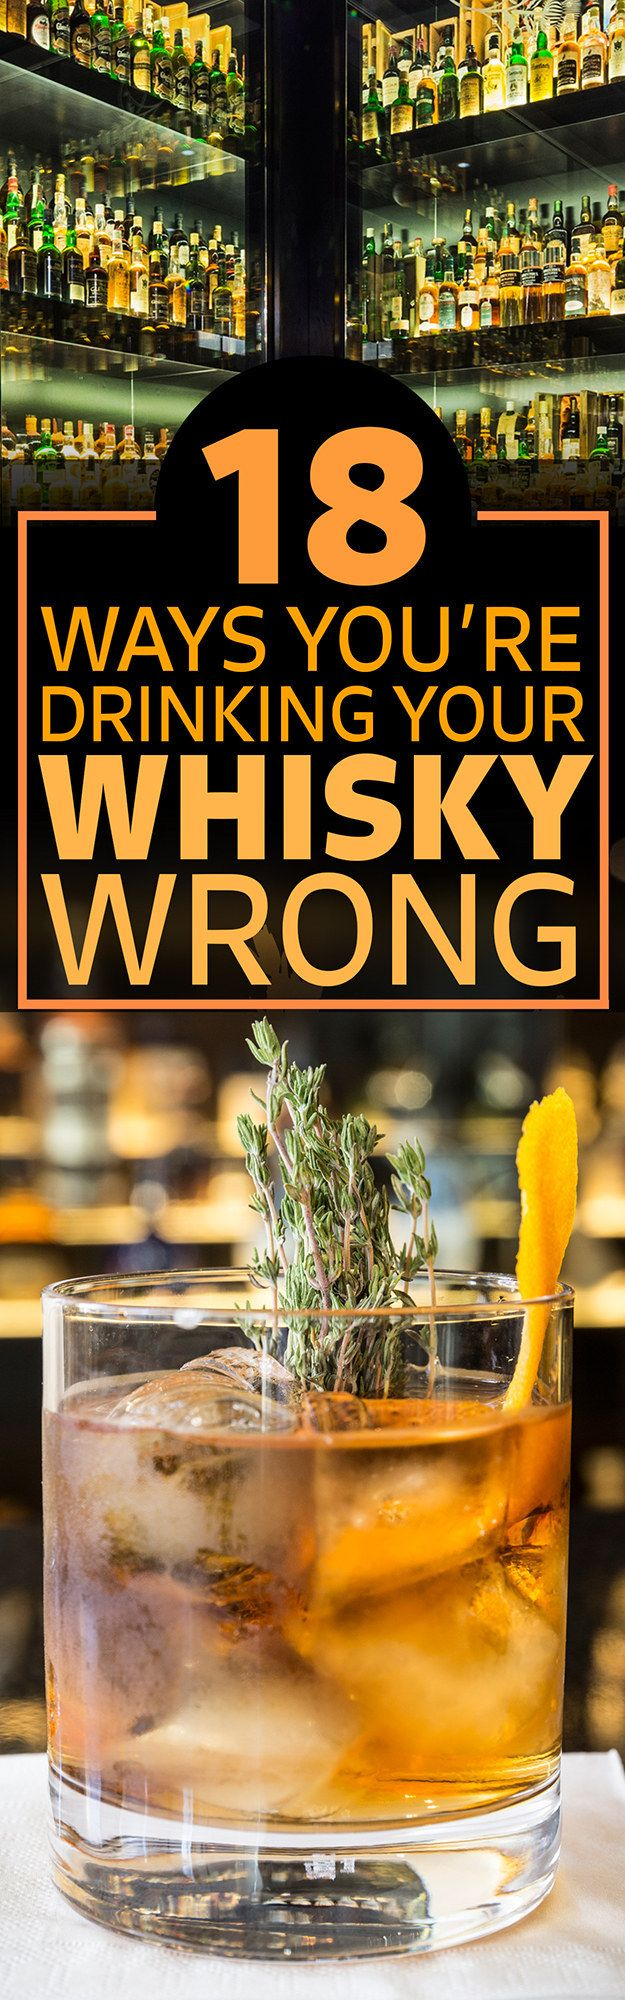 18 Ways You've Been Drinking Your Whisky Wrong